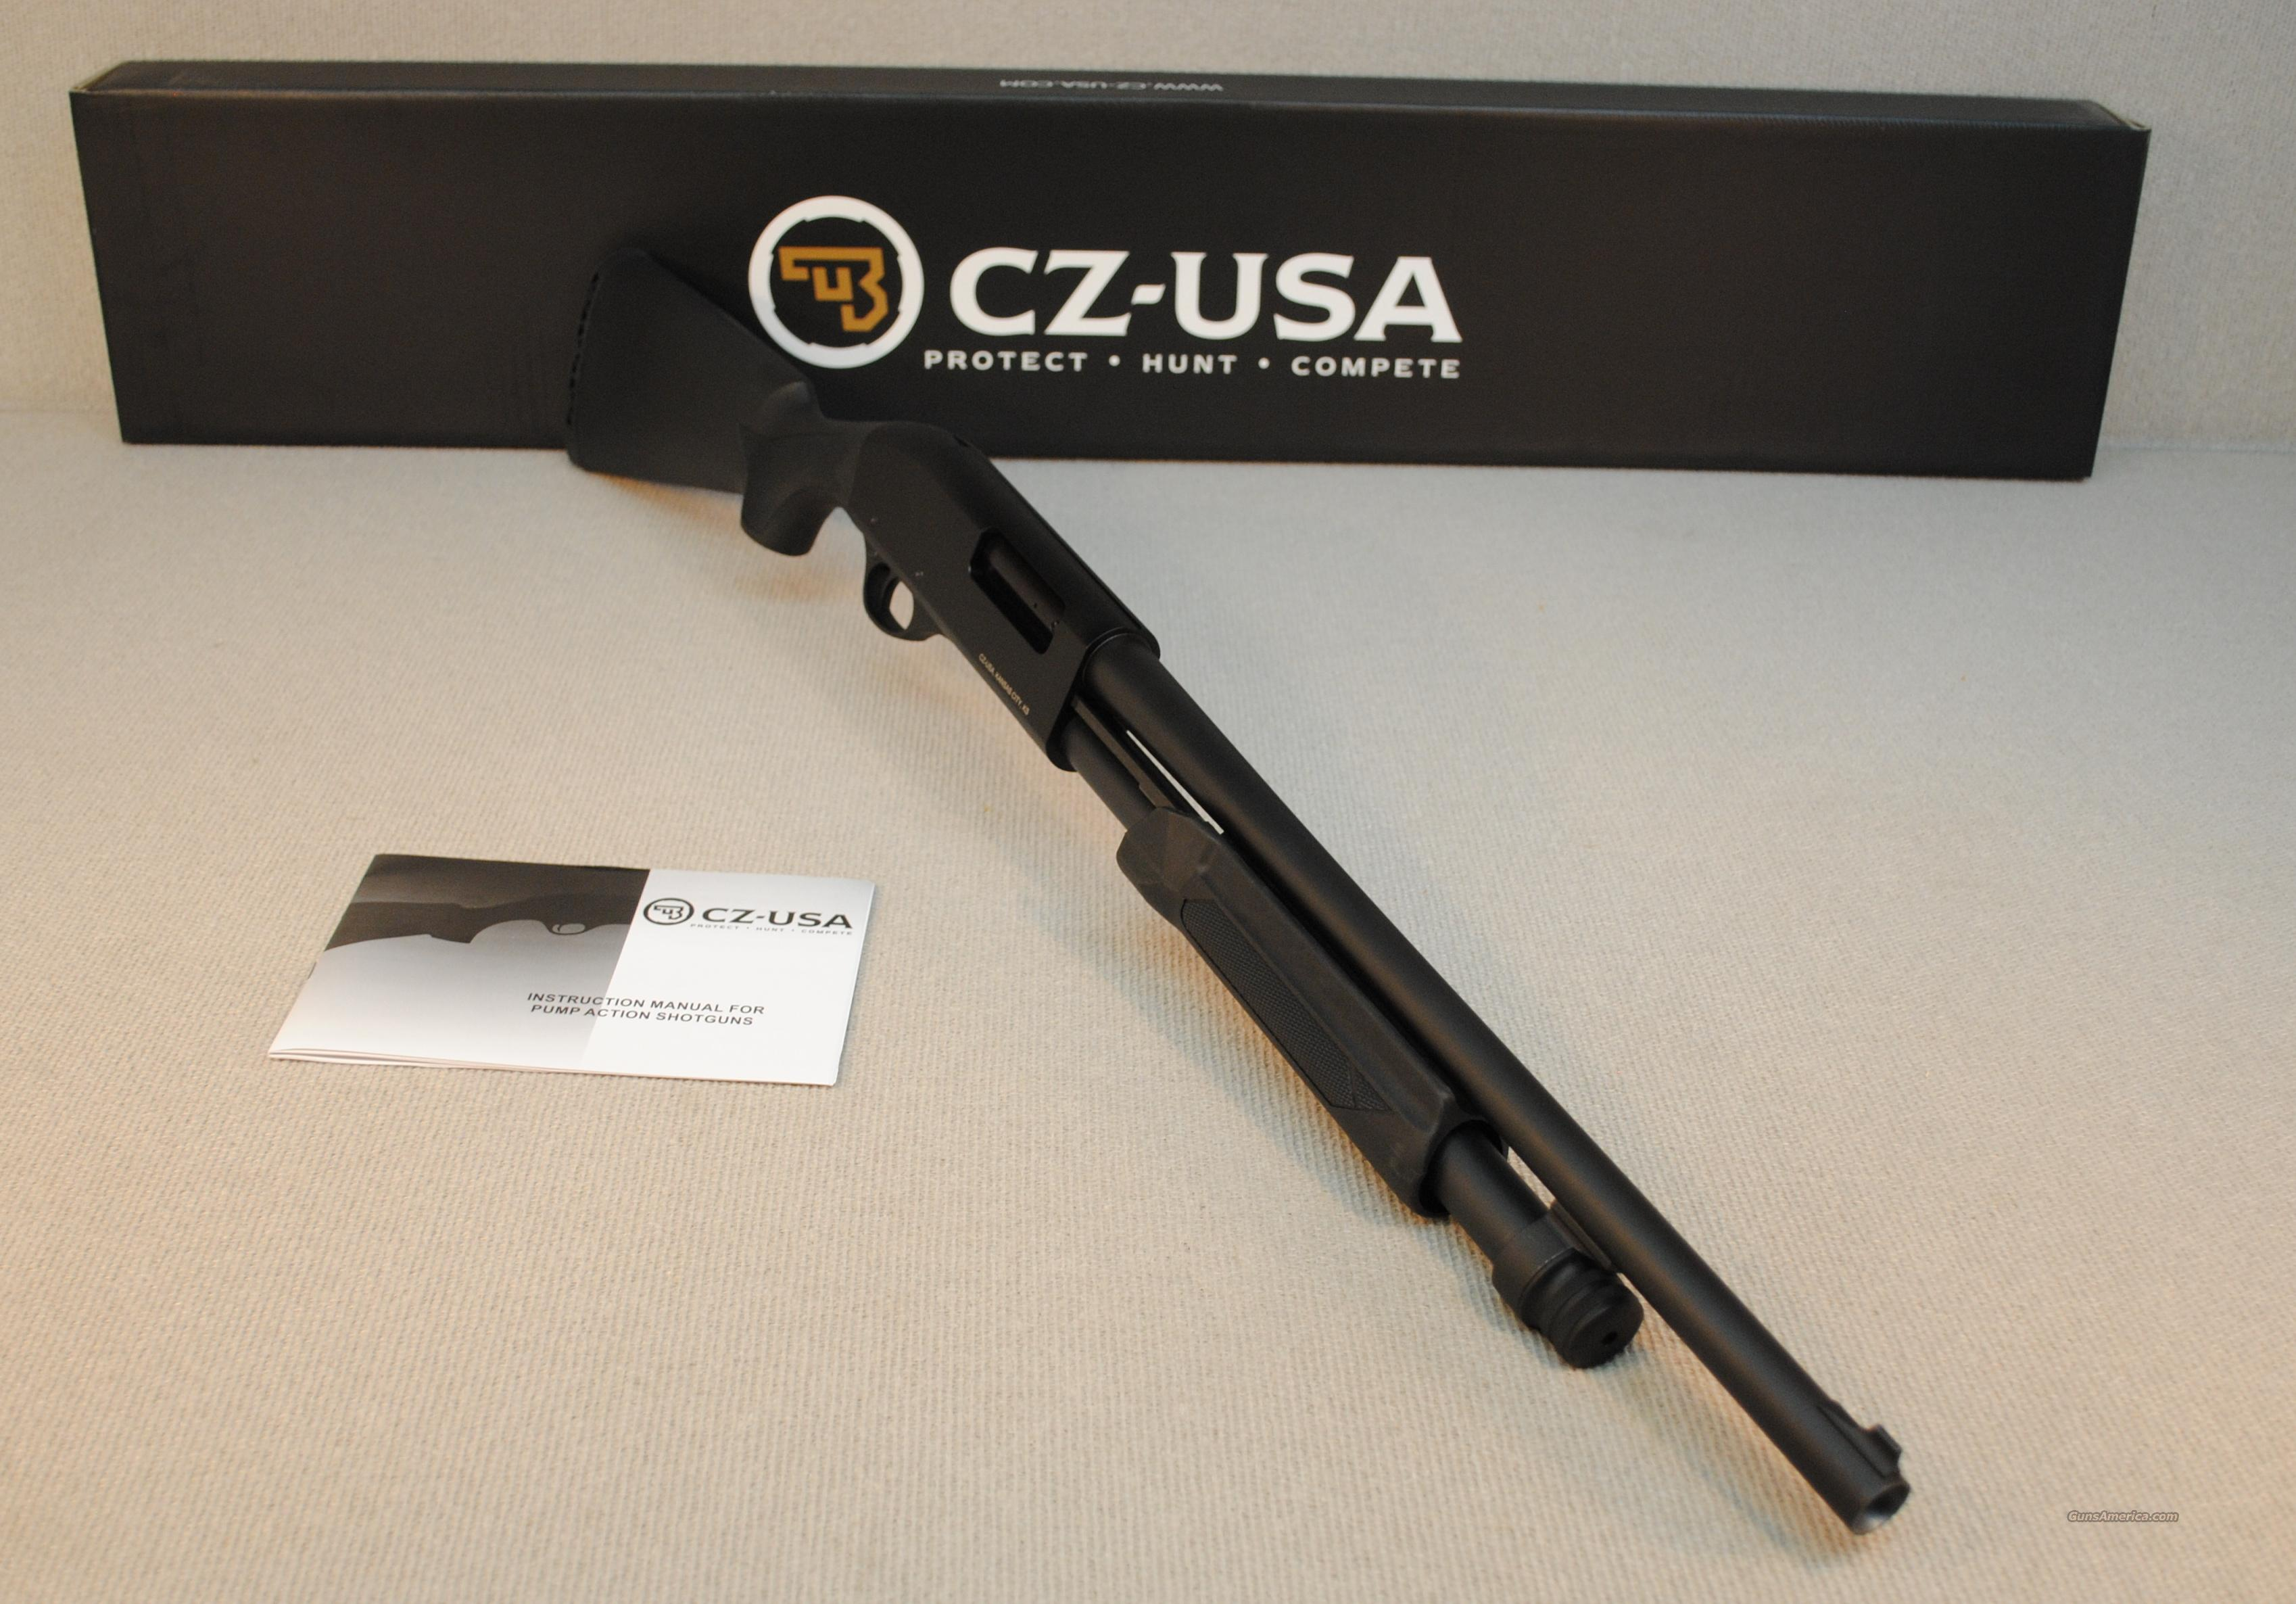 CZ-USA 612 HOME DEFENSE PUMP ACTION SHOTGUN 12 GA  Guns > Shotguns > CZ Shotguns